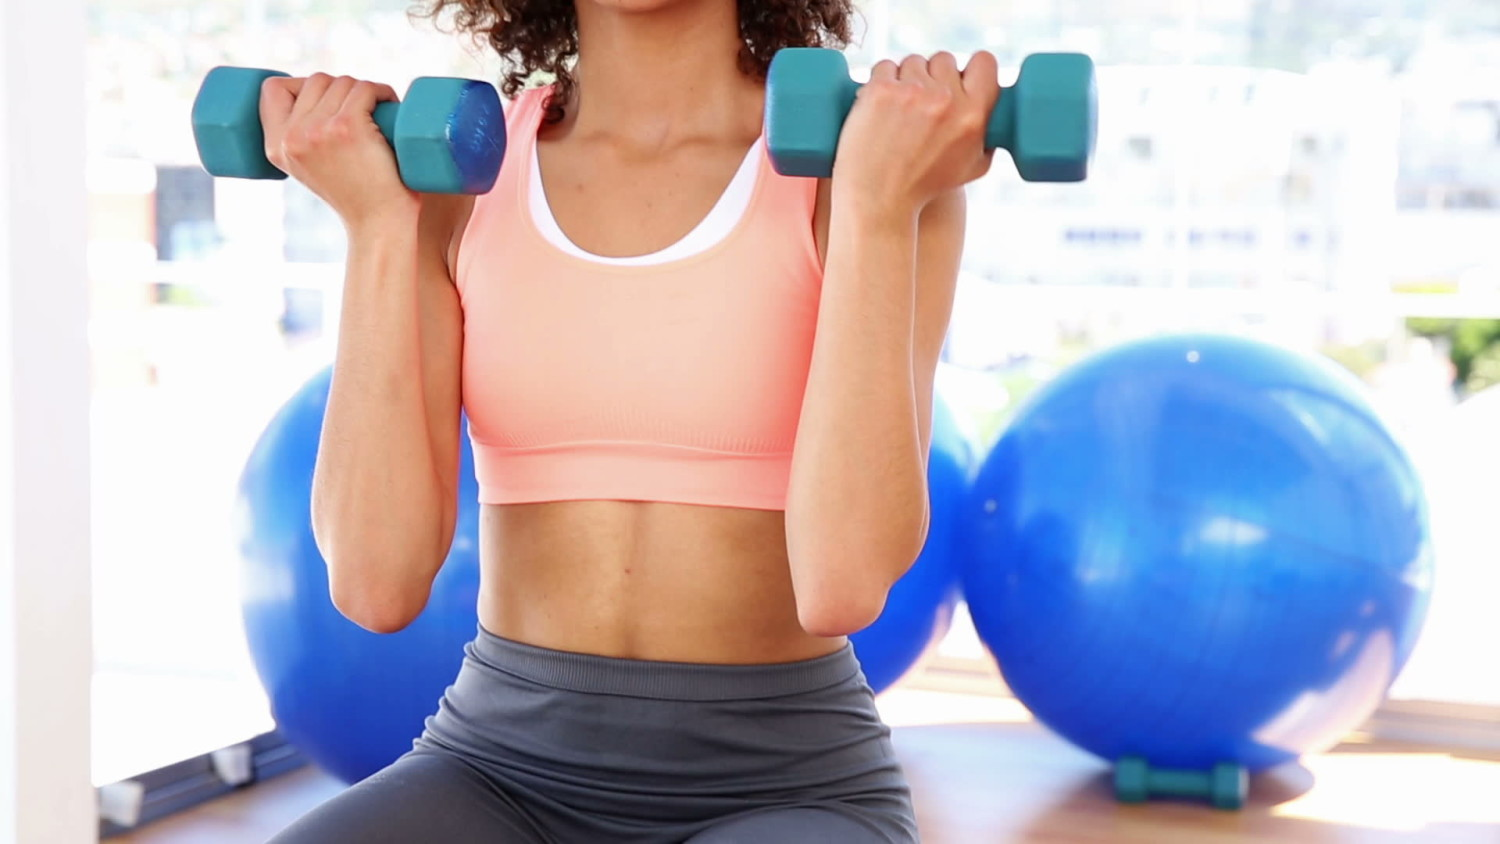 5 Reasons You Should Focus On Fitness